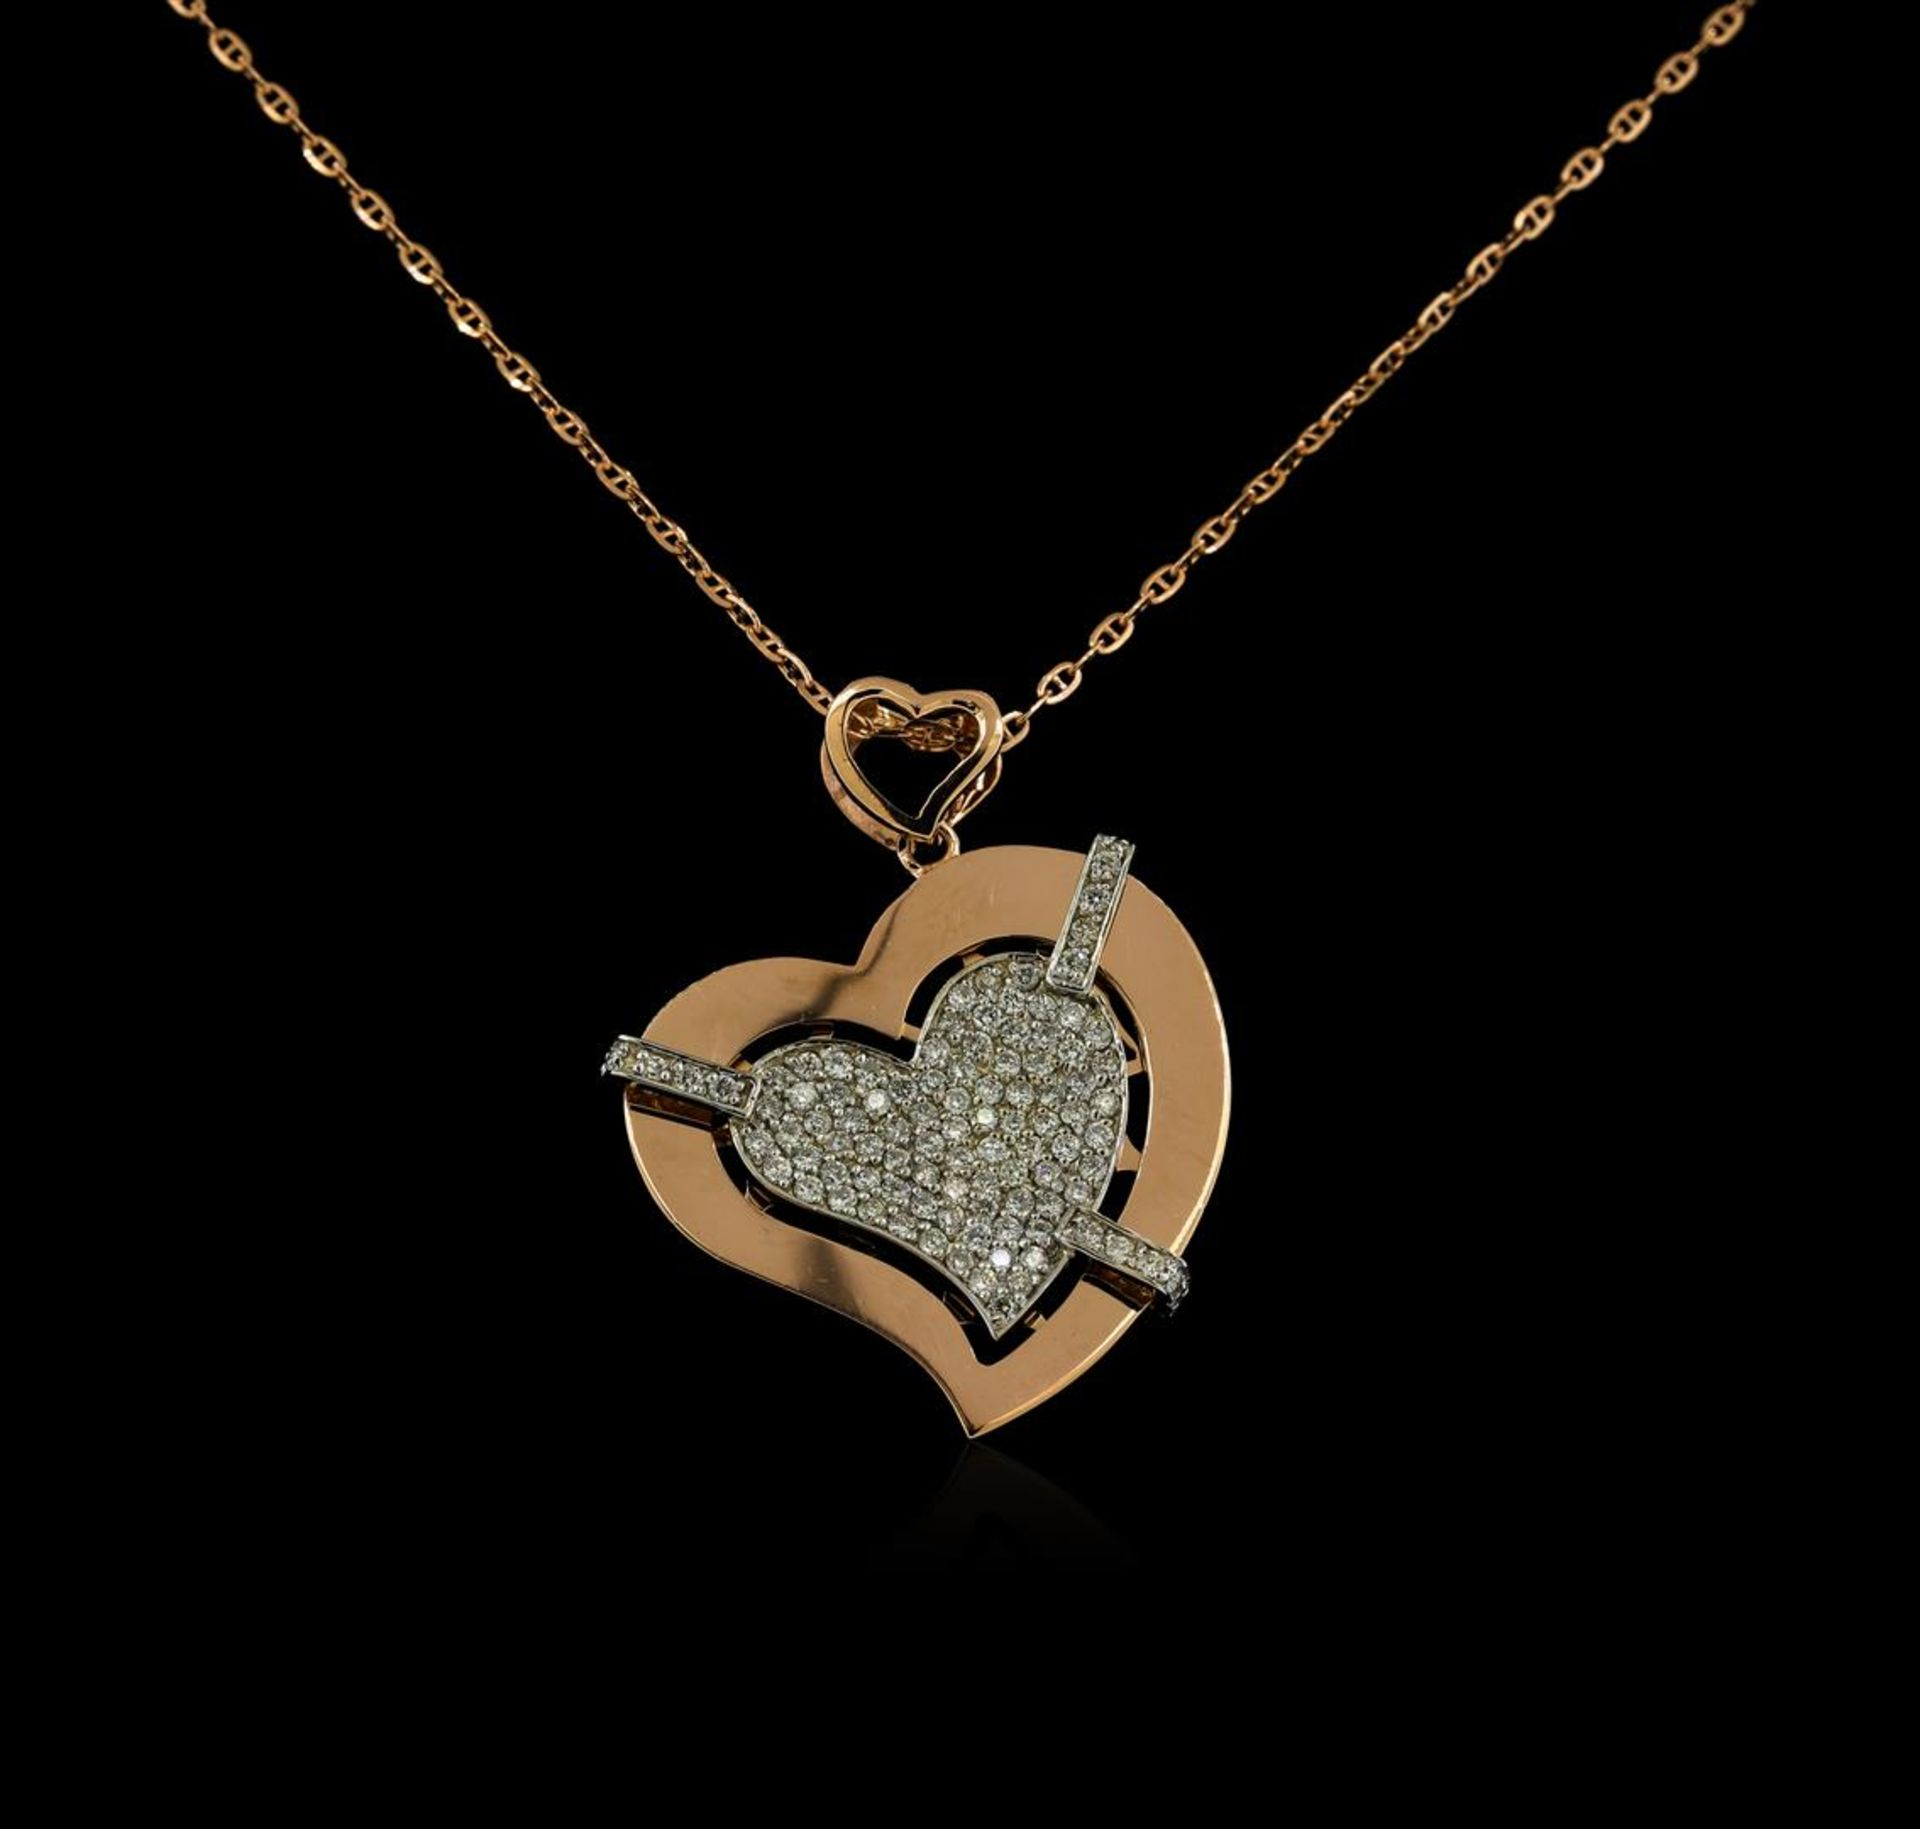 0.72 ctw Diamond Pendant With Chain - 14KT Rose Gold - Image 2 of 3